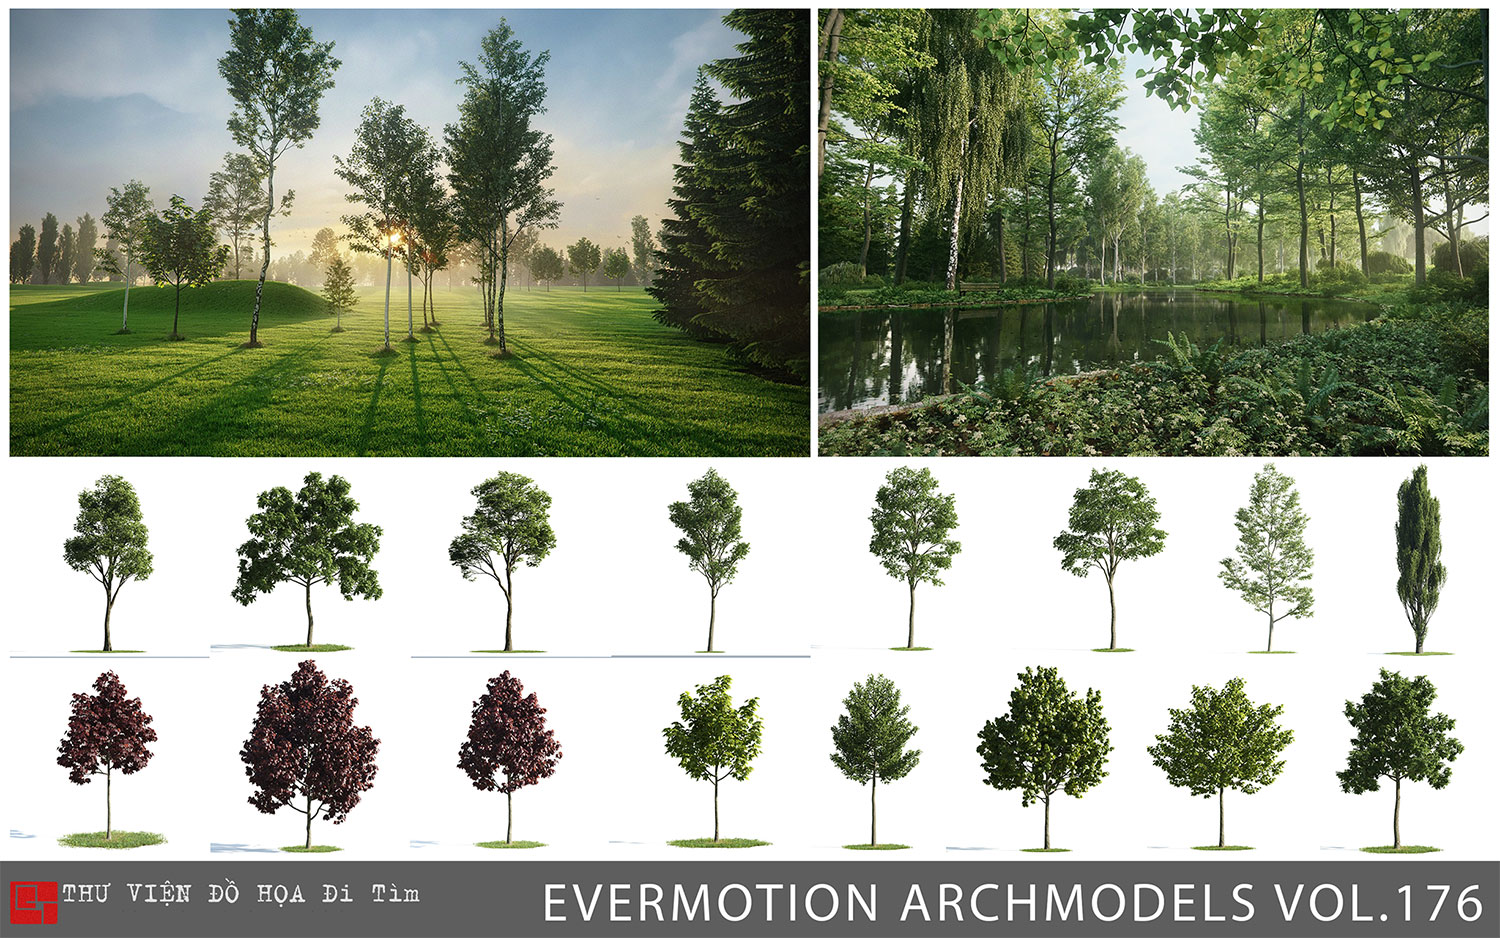 Evermotion Archmodels vol 176